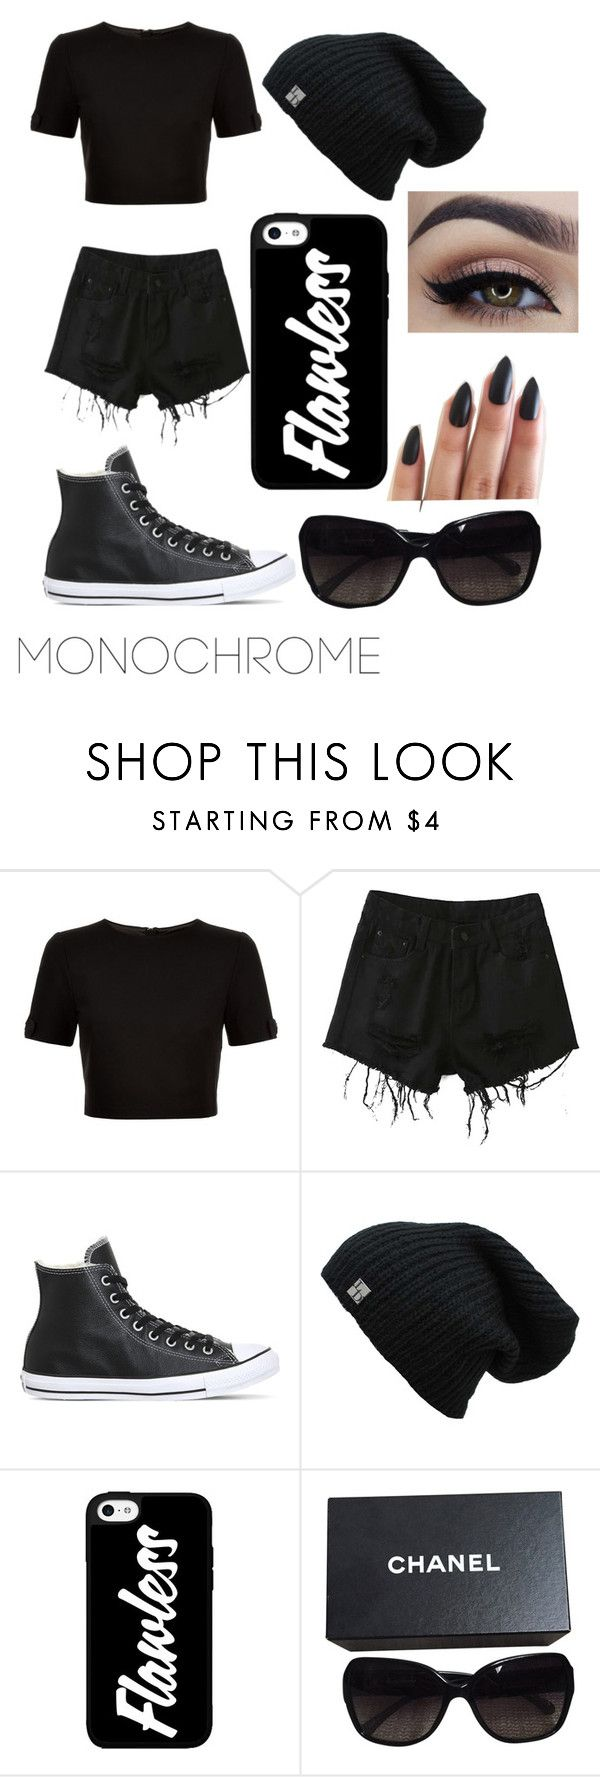 """""""Untitled #29"""" by crmoritz ❤ liked on Polyvore featuring Ted Baker, Chicnova Fashion, Converse, Chanel and monochrome"""